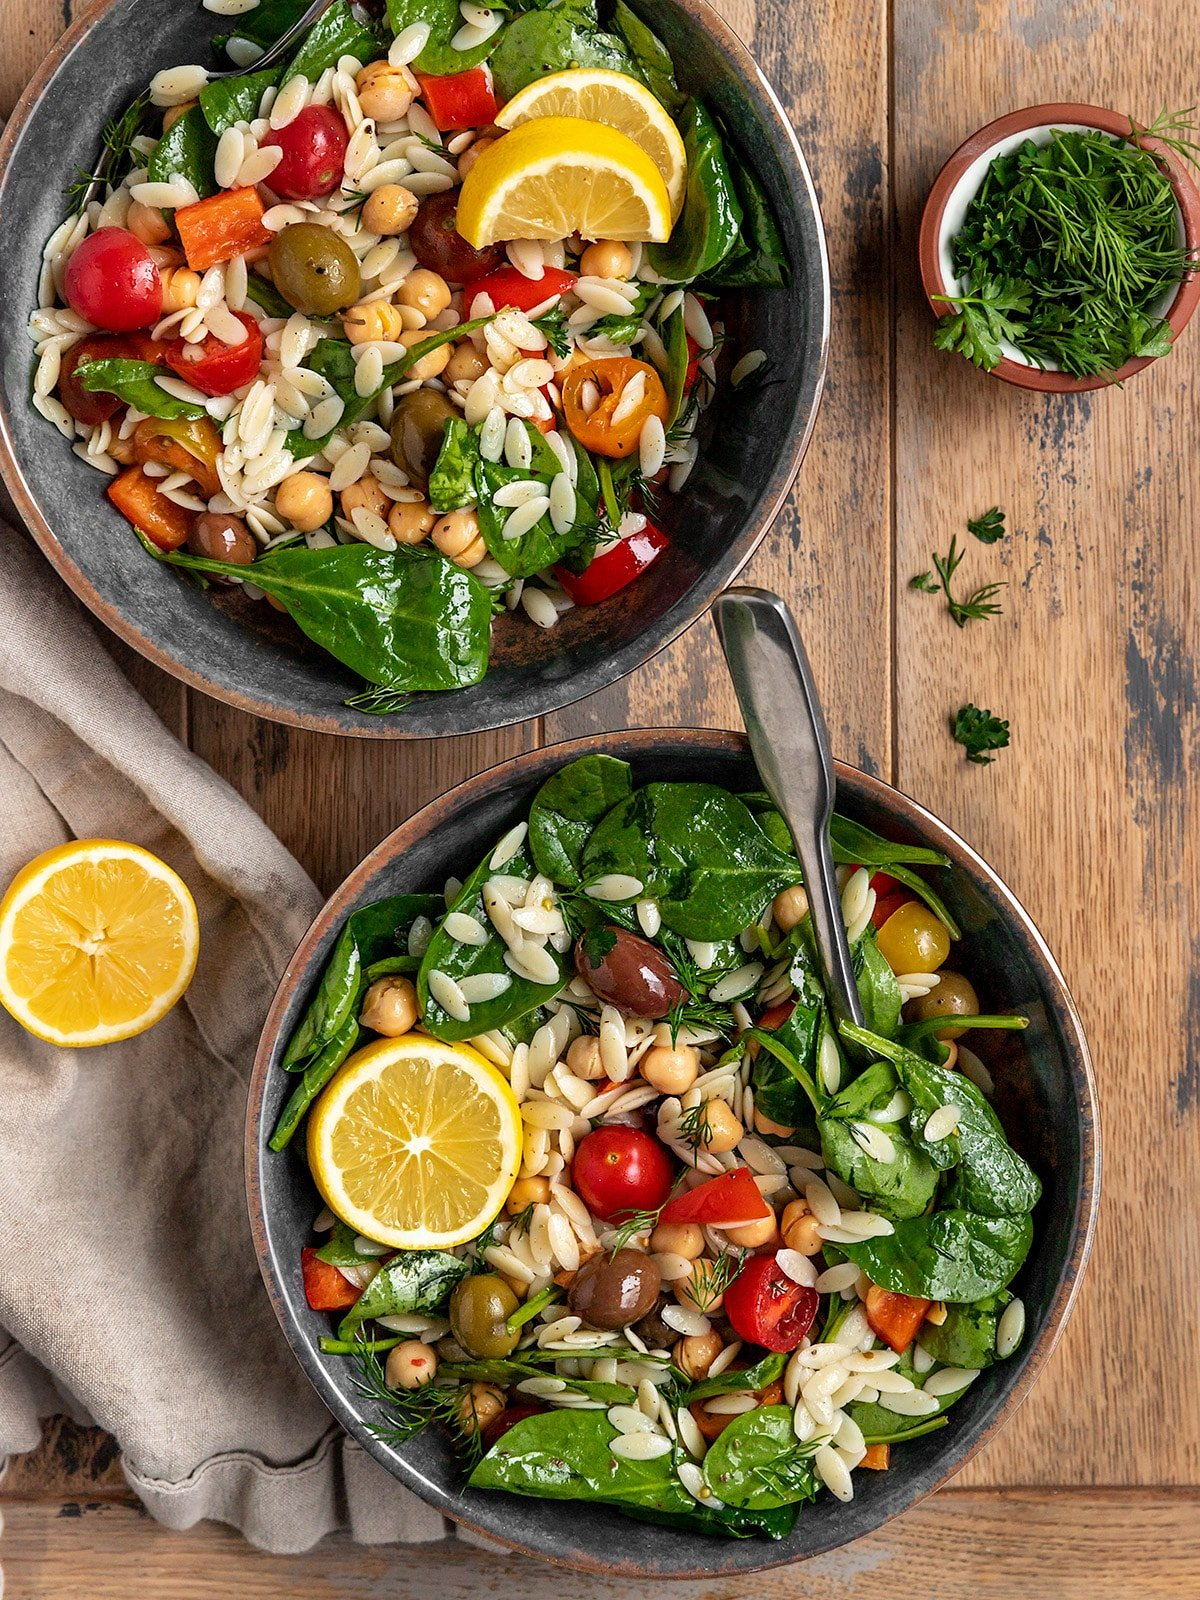 two bowls of salad filled with spinach, orzo, tomatoes, red pepper, fresh dill, parsley, chickpeas, and olives with a lemon slices on top